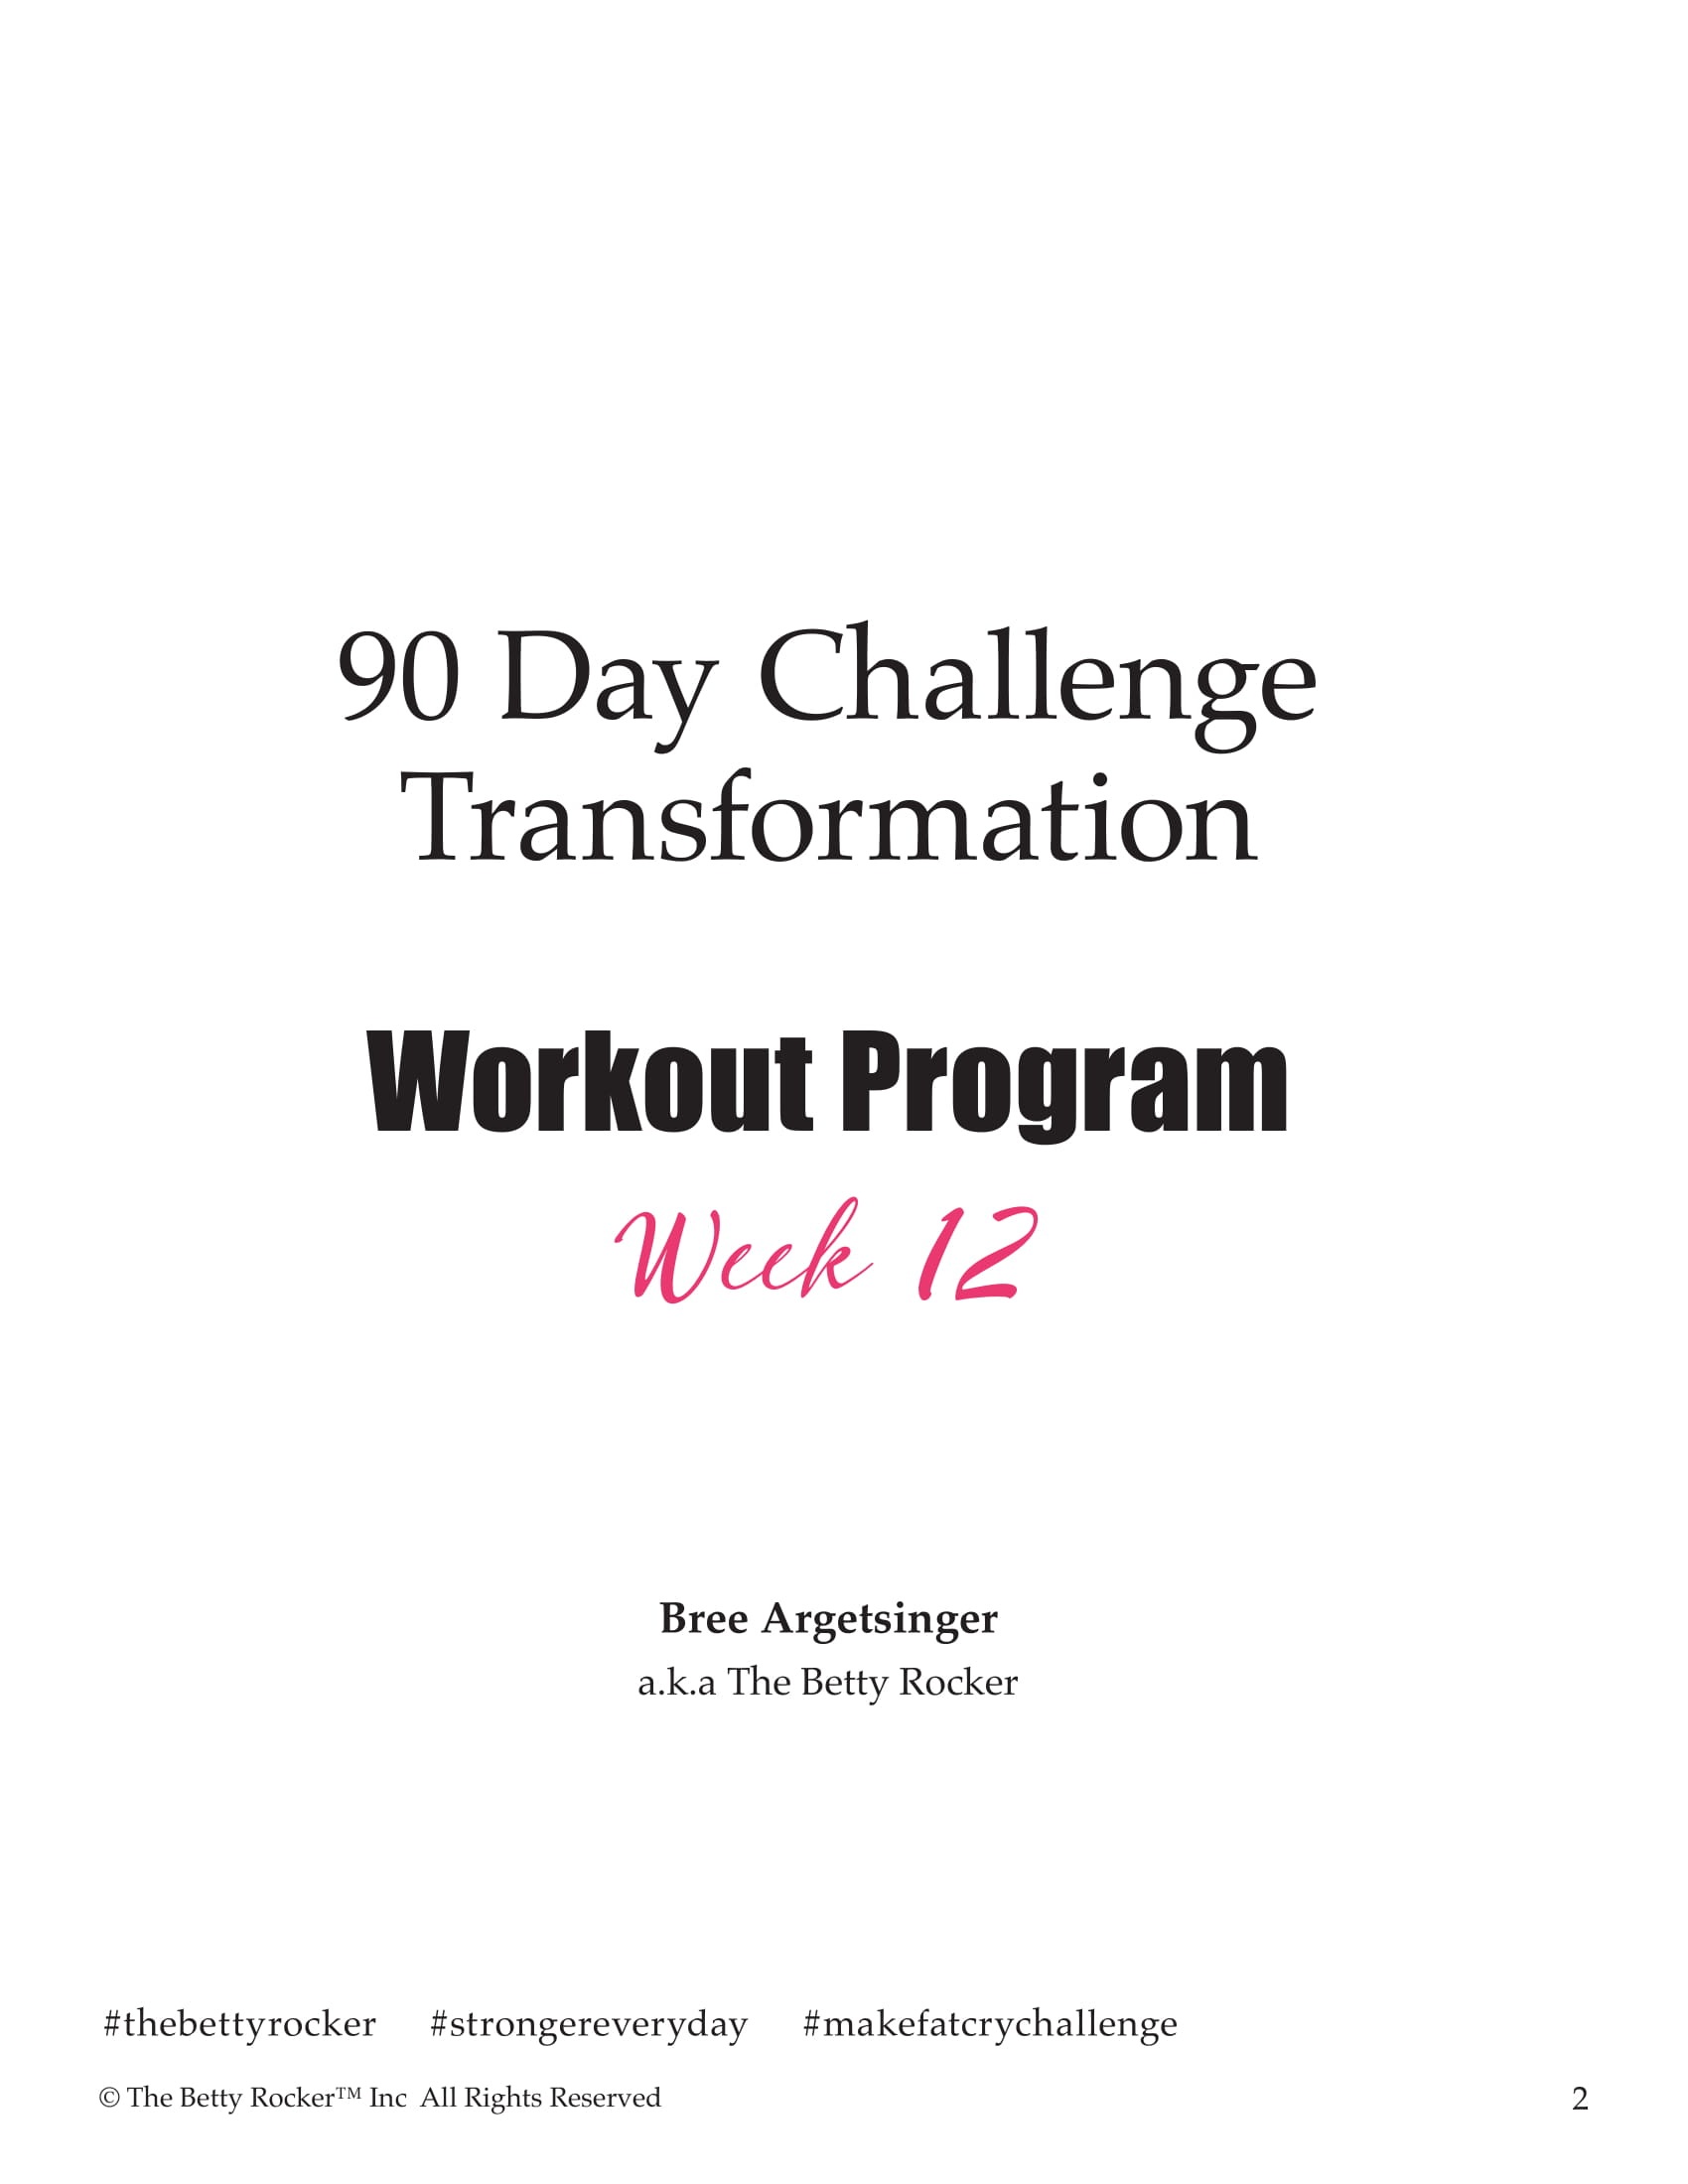 90 day workout challenge example